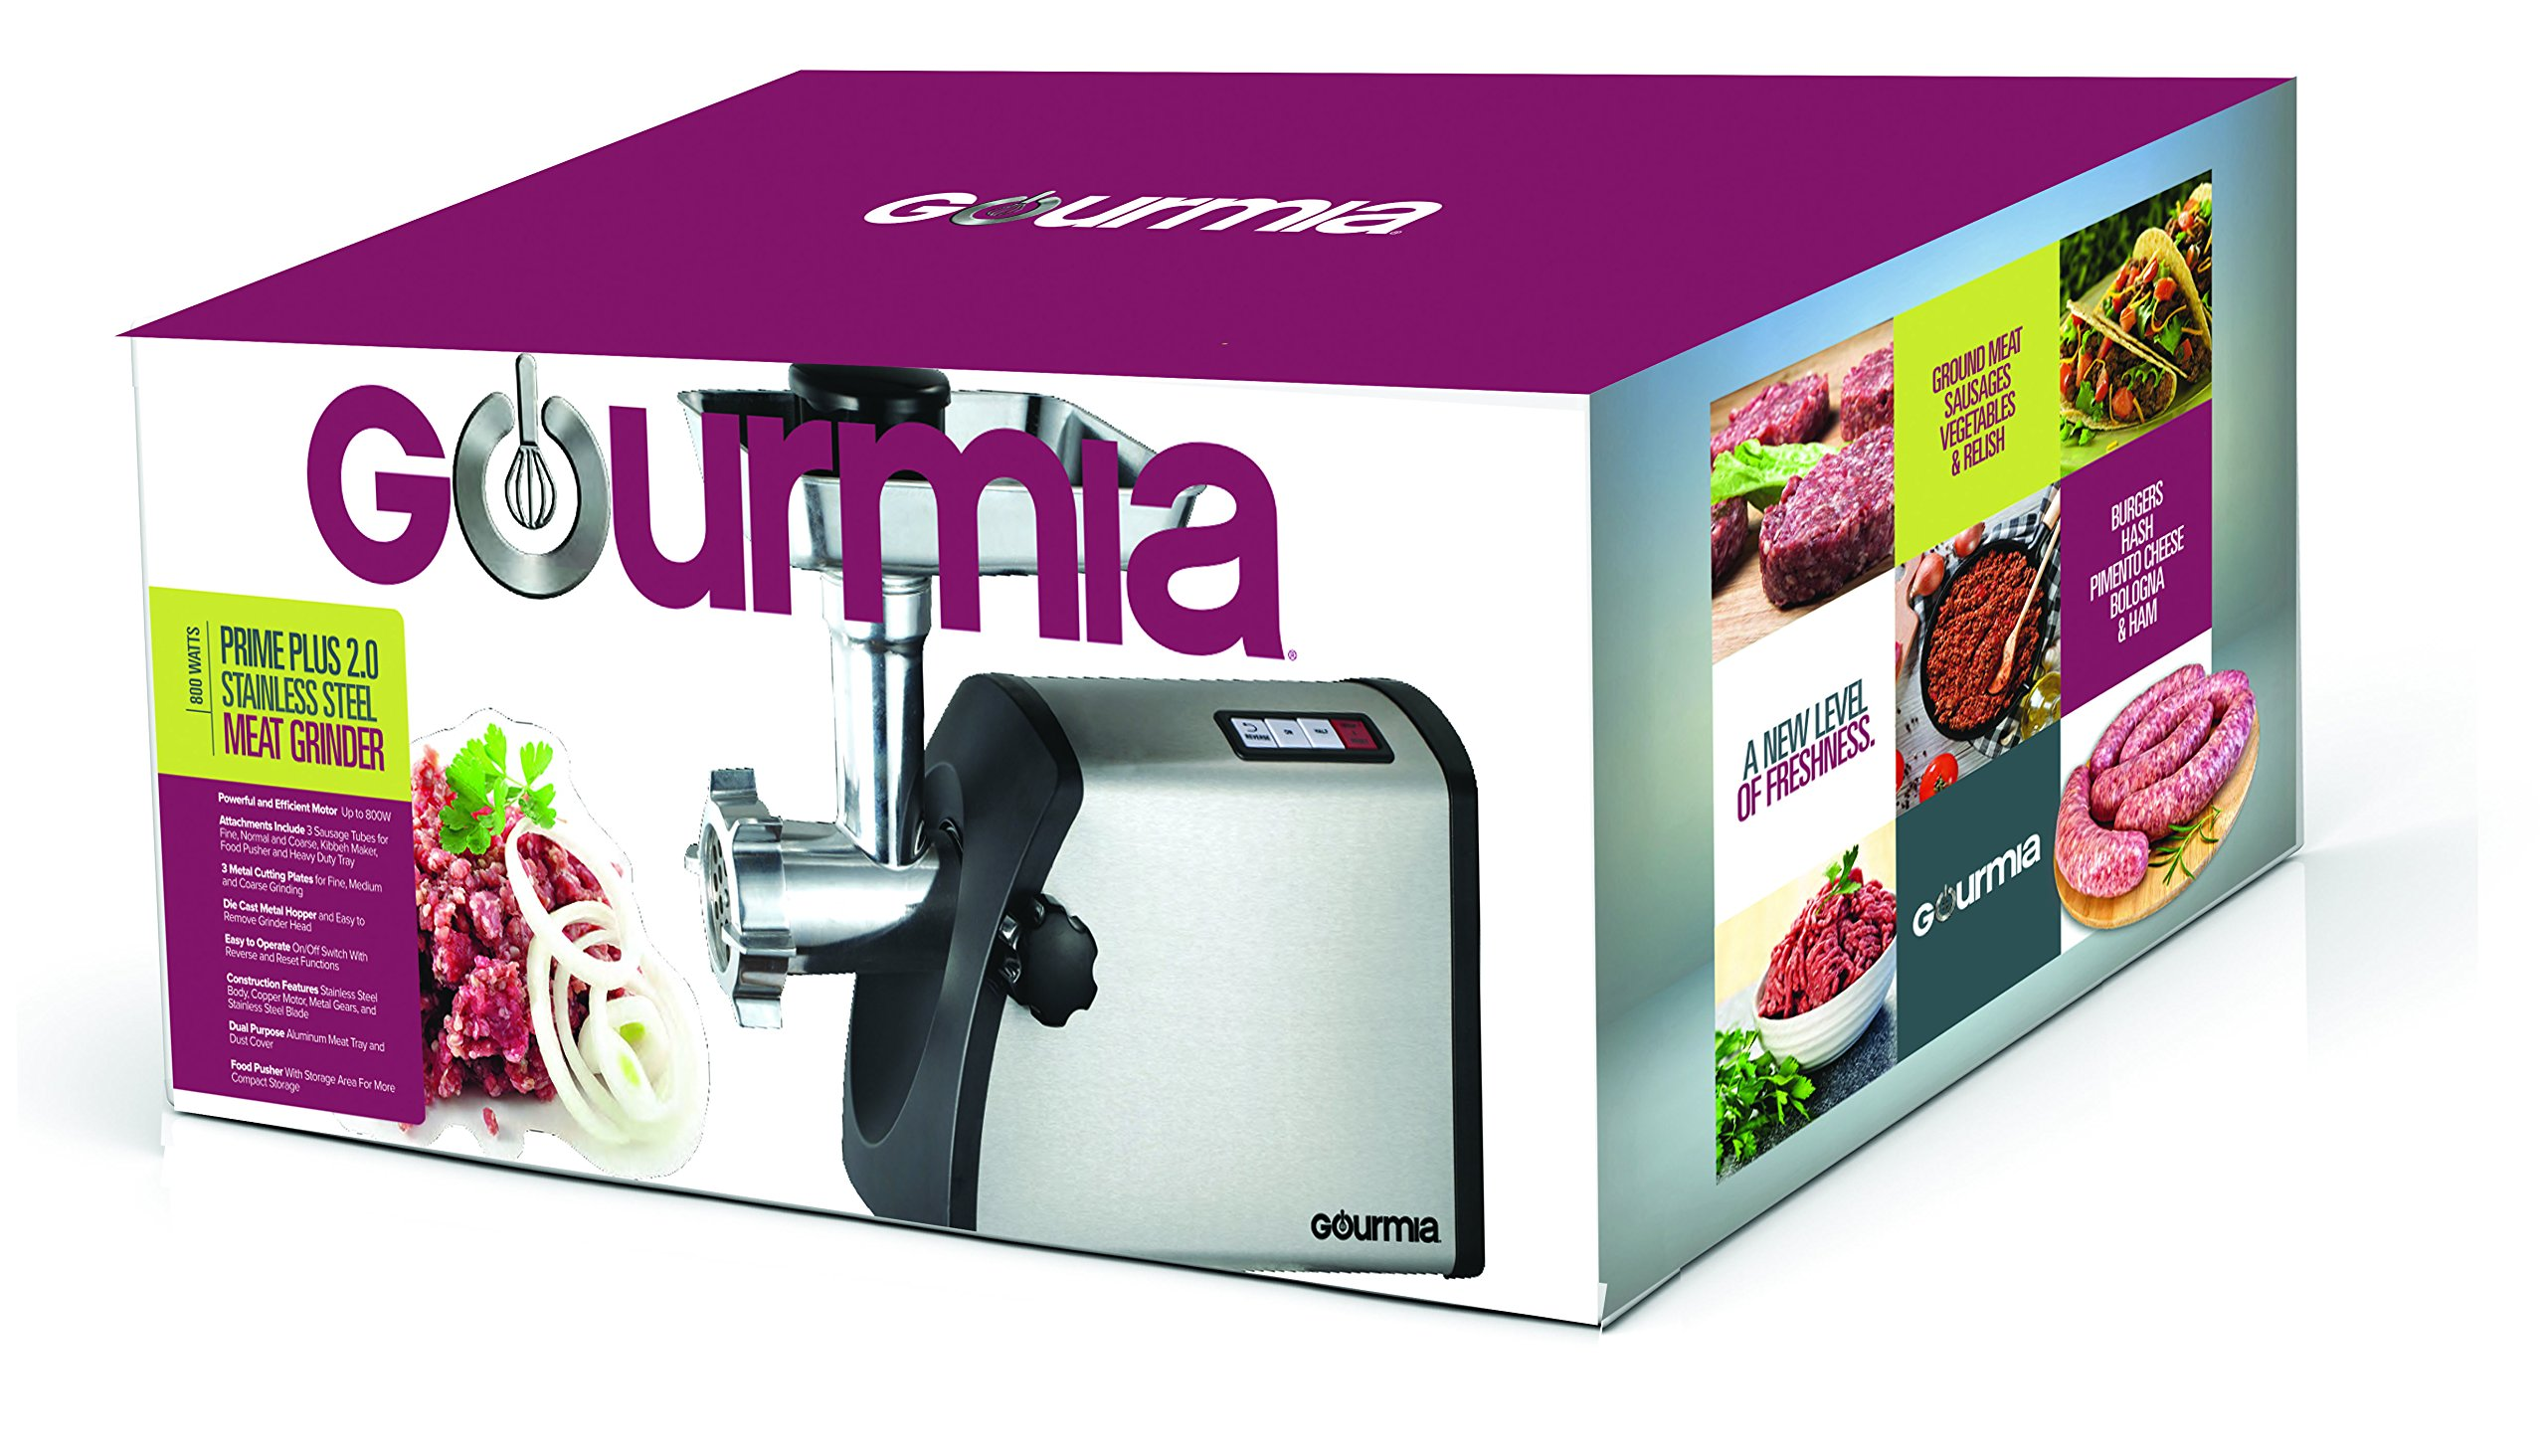 Gourmia GMG7500 Prime Plus Stainless Steel Electric Meat Grinder Different Grinding Plates, Sausage Funnels And Kibbeh Attachment Recipe Book Included 800 Watts ETL Approved 2200 Watts Max. - 110V by Gourmia (Image #8)